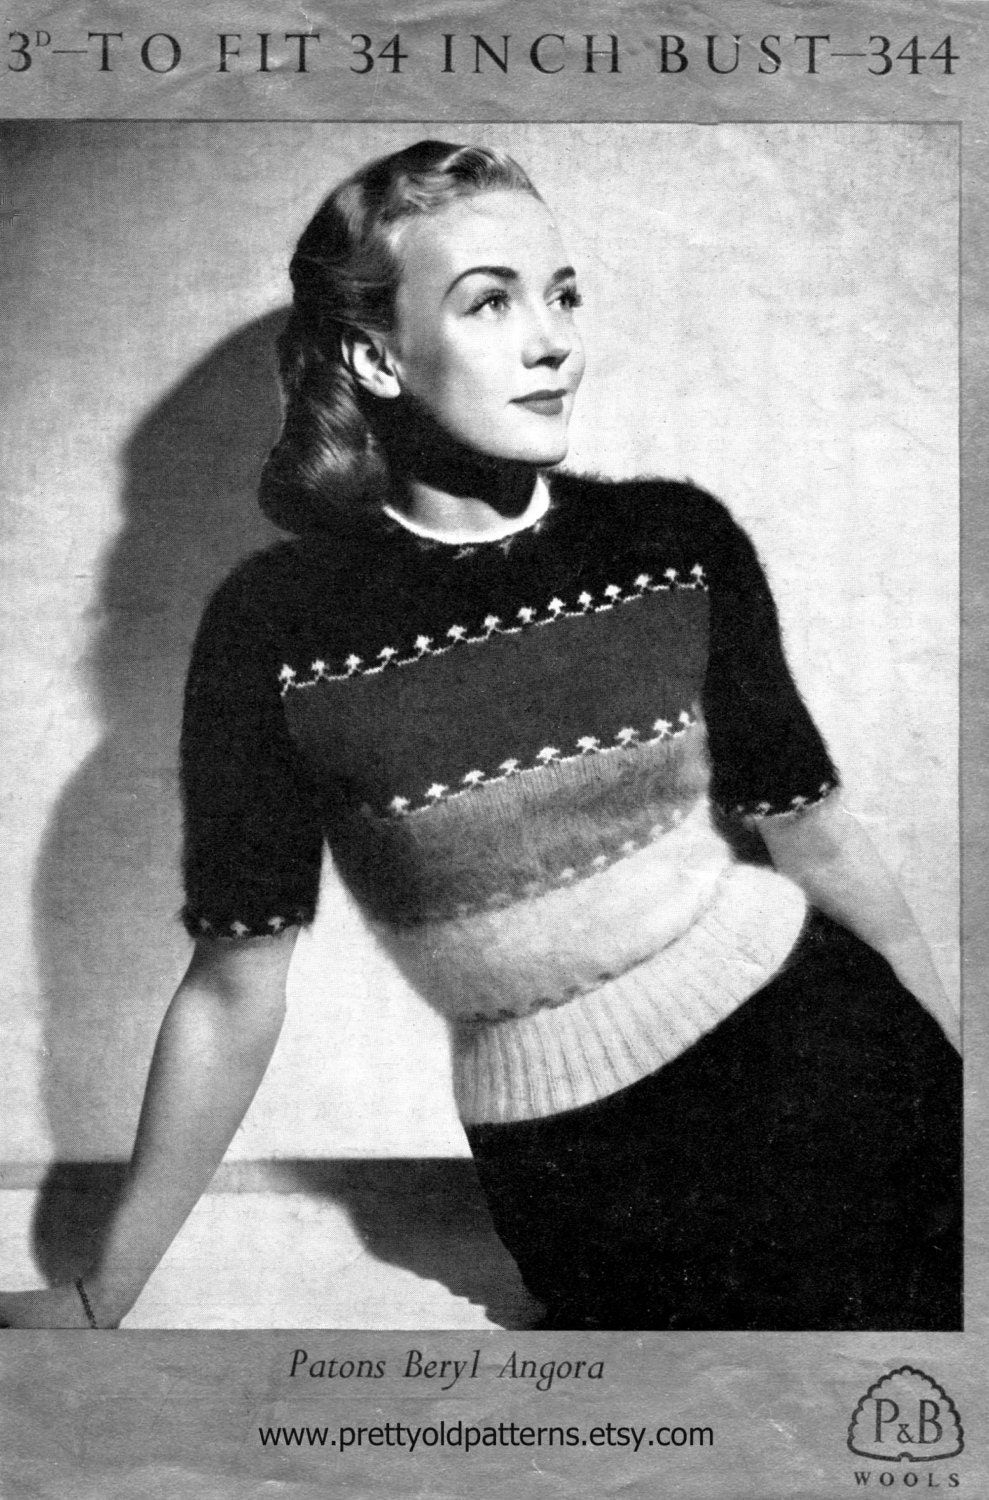 Lovely Ladies Angora Striped Sweater 34 Bust Patons 344 1940s or 50s Vintage Knitting Pattern Download